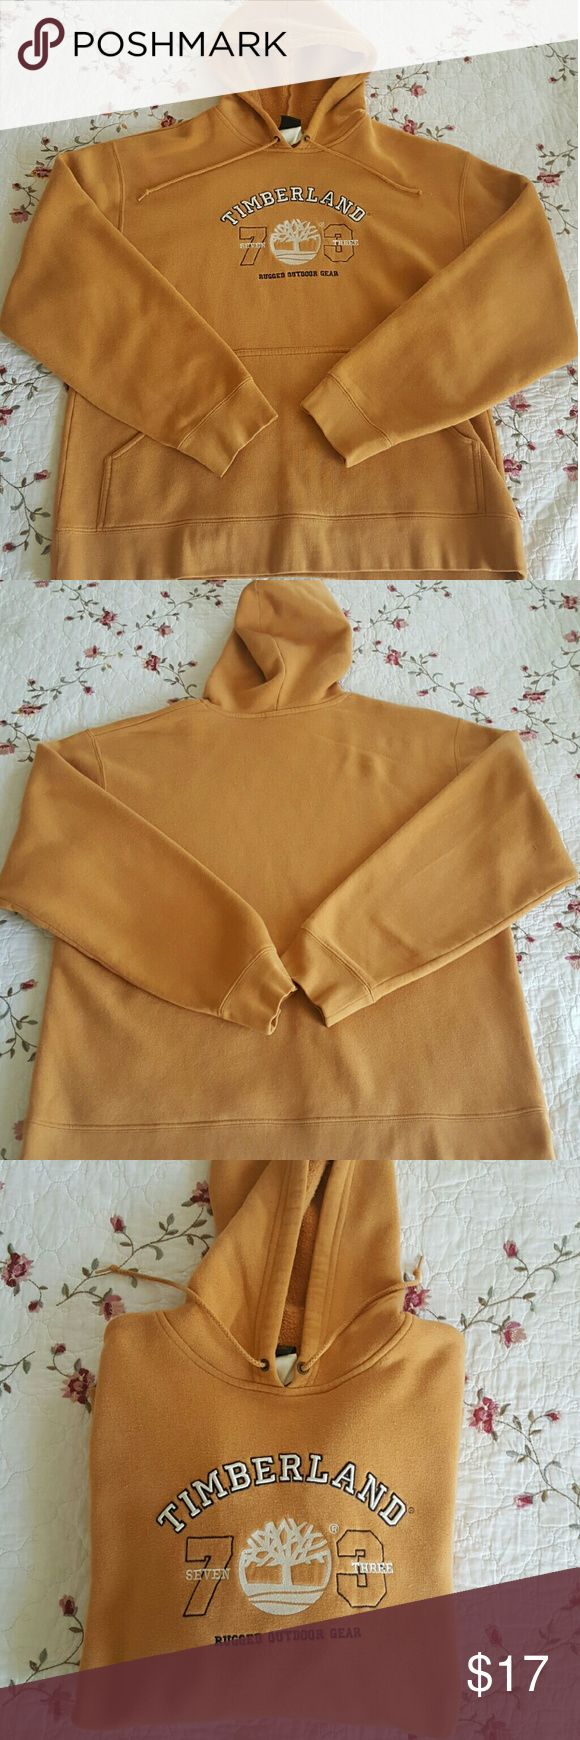 Timberland Hoodie This hoodie is a mix between honey and apricot orange color (probably brown to some). It is a medium and is in good condition, and the lettering on the jacket is perfectly in tact. It is probably one of my faves but someone else has to enjoy it now! Timberland Jackets & Coats